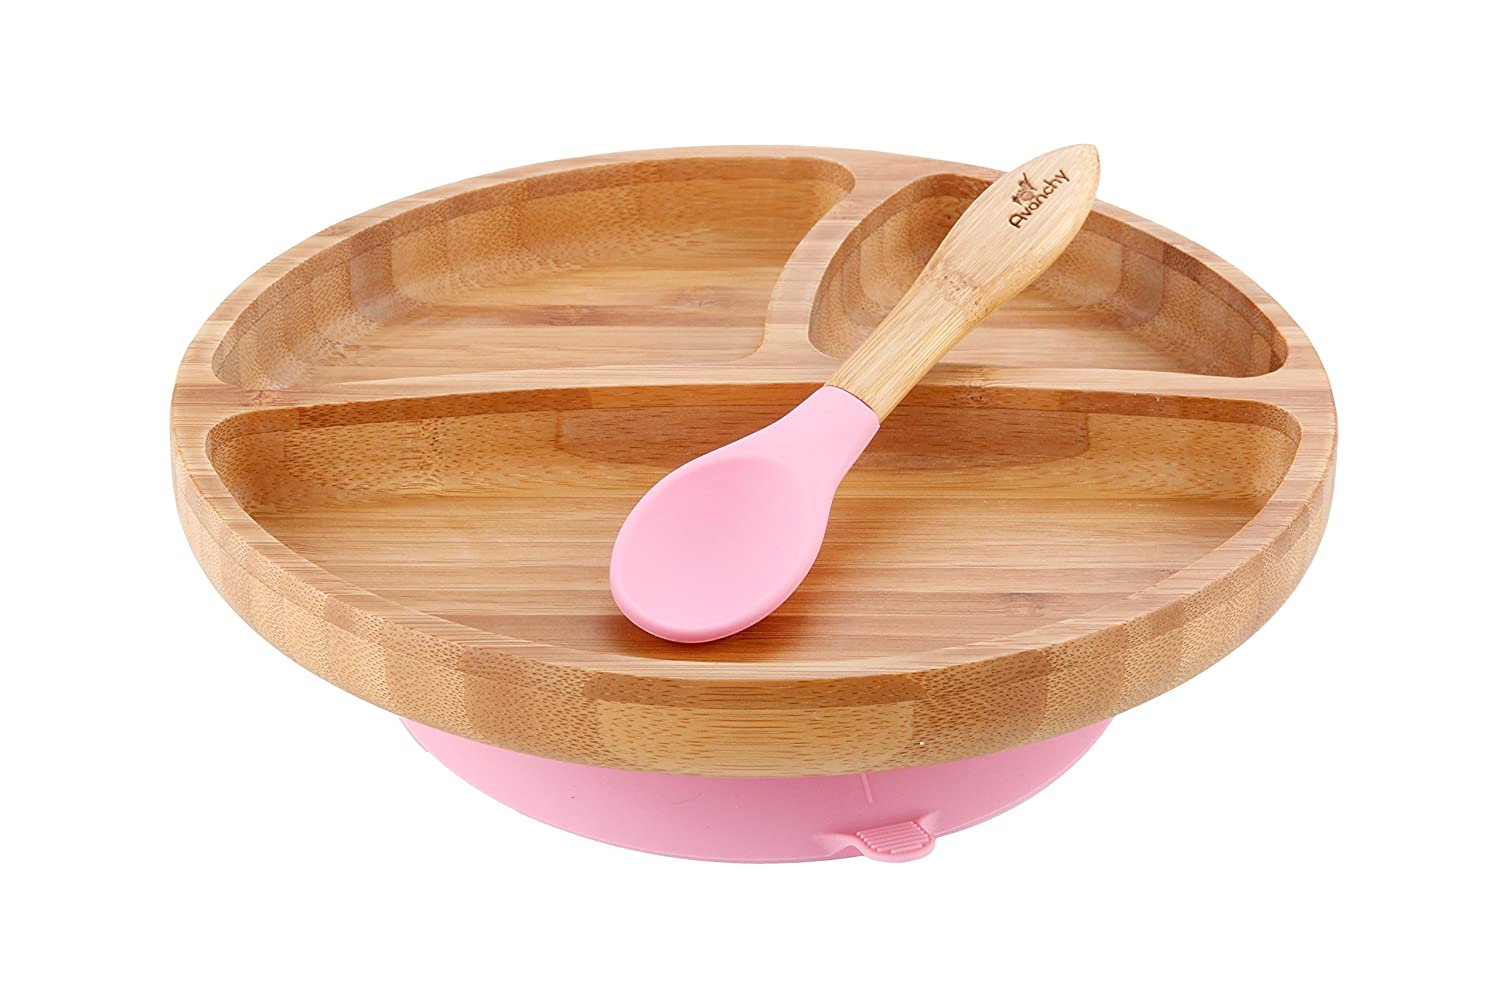 Avanchy Baby Toddler Feeding Plate Bamboo - Stay Put Suction Divided Plates Plus Baby Spoon (Pink)